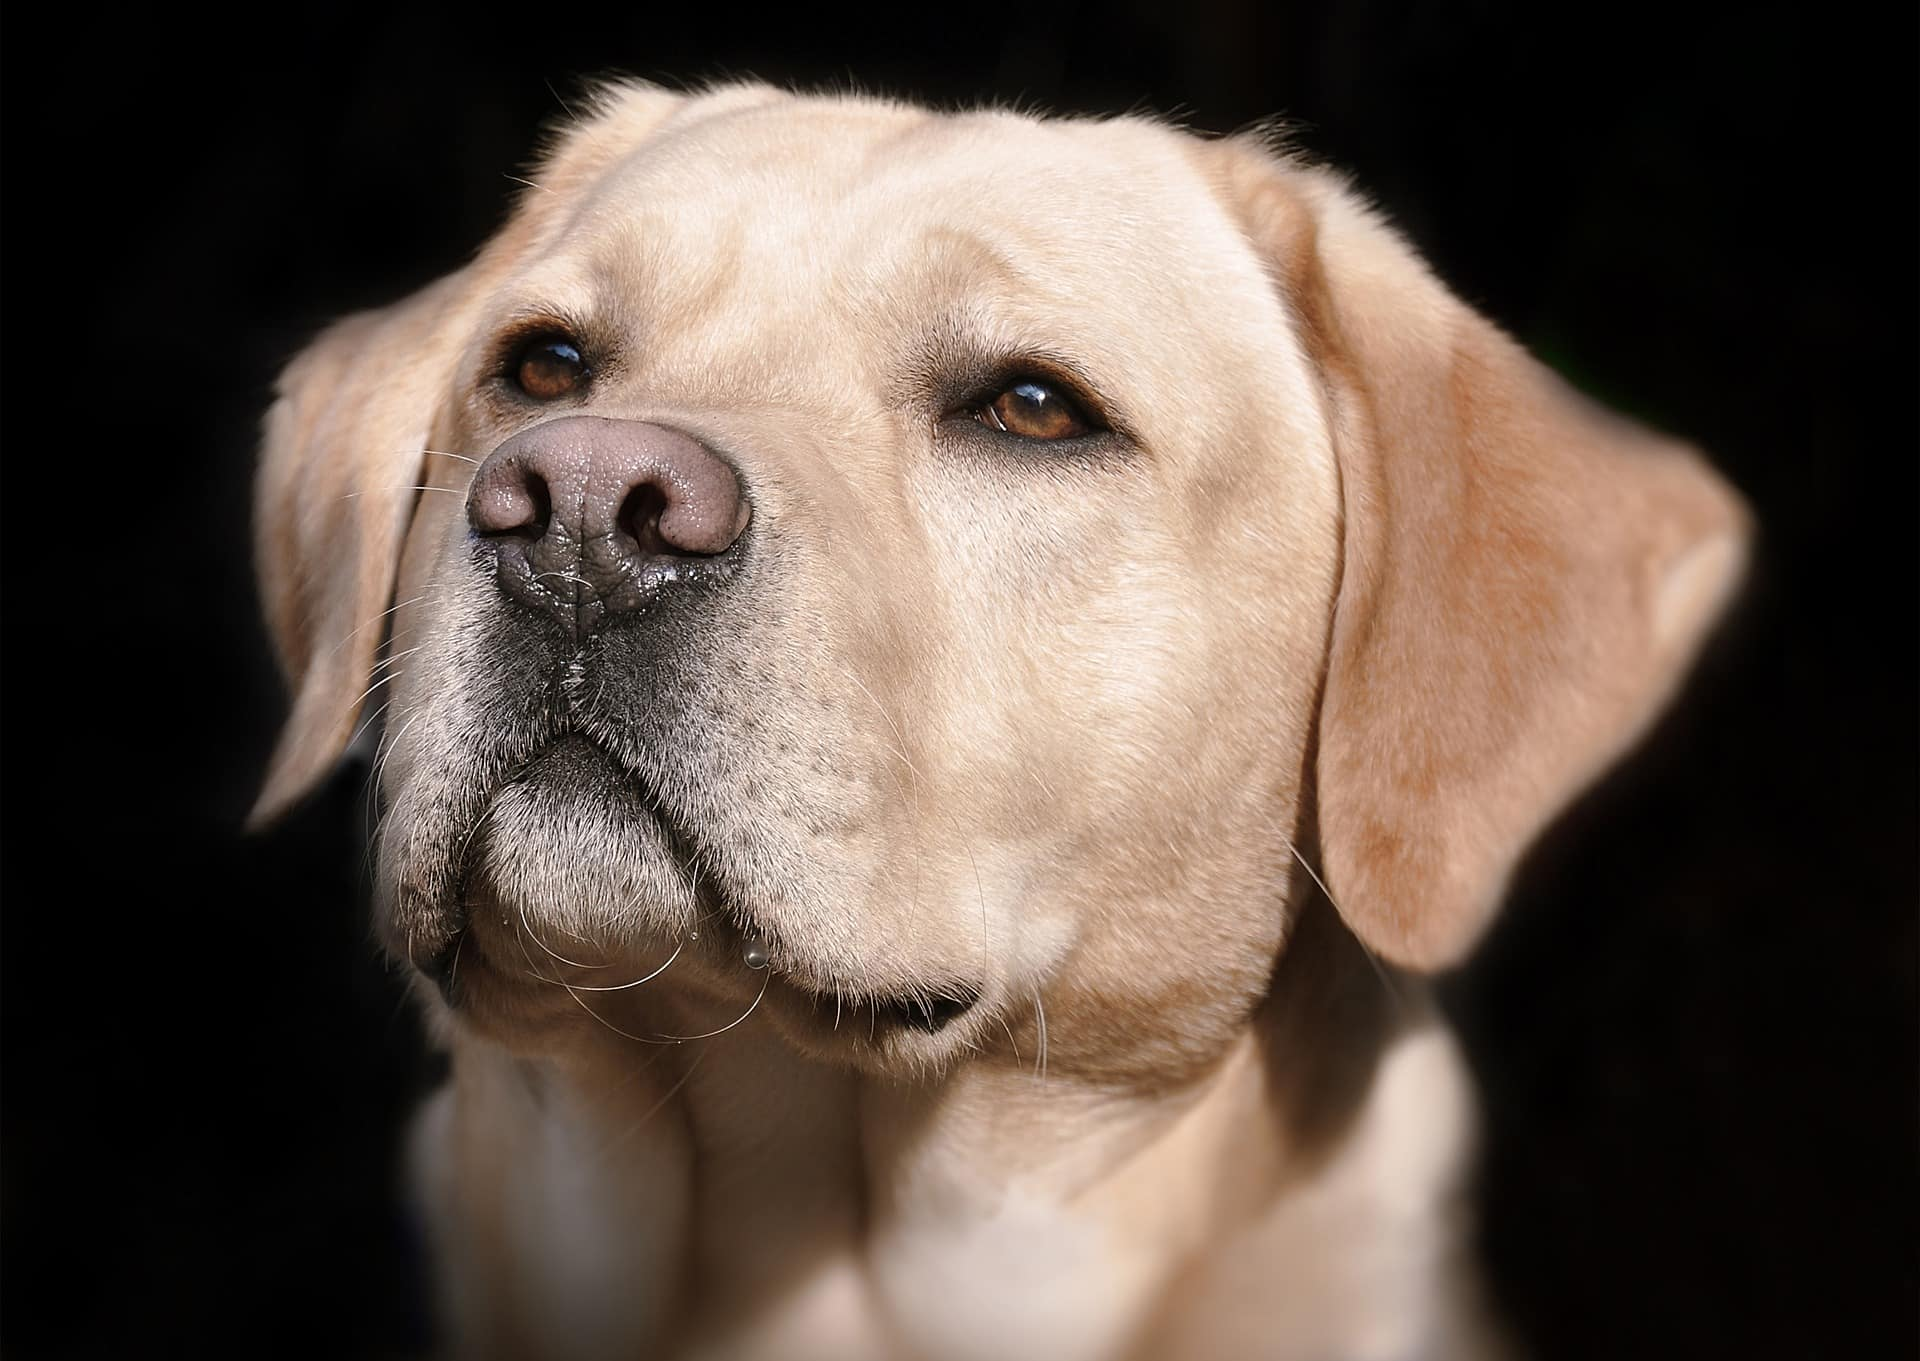 Runny Nose In Dog: Common Causes, Treatment, And Care